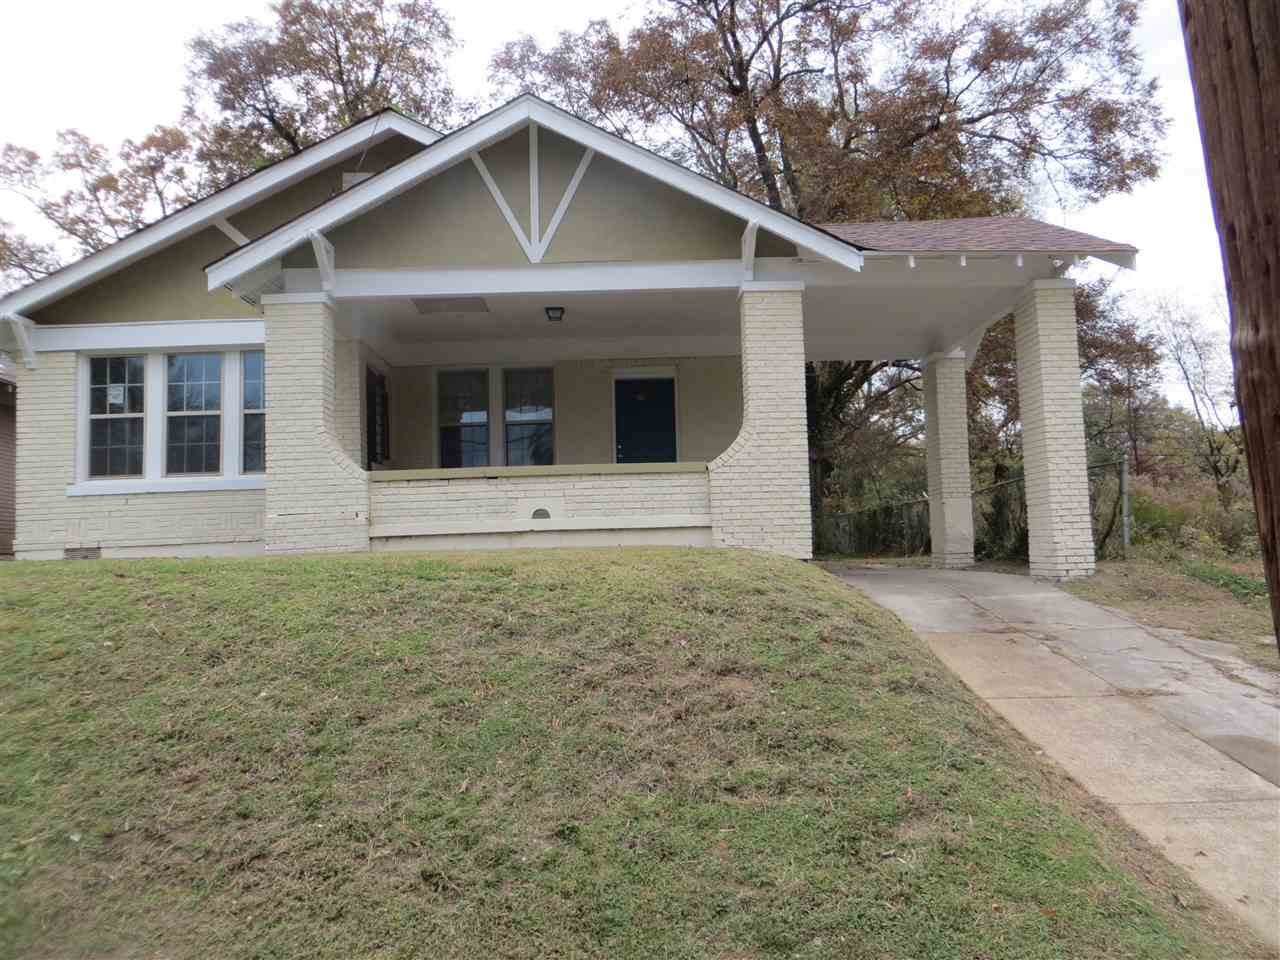 2066 Mclemore Ave - Photo 1